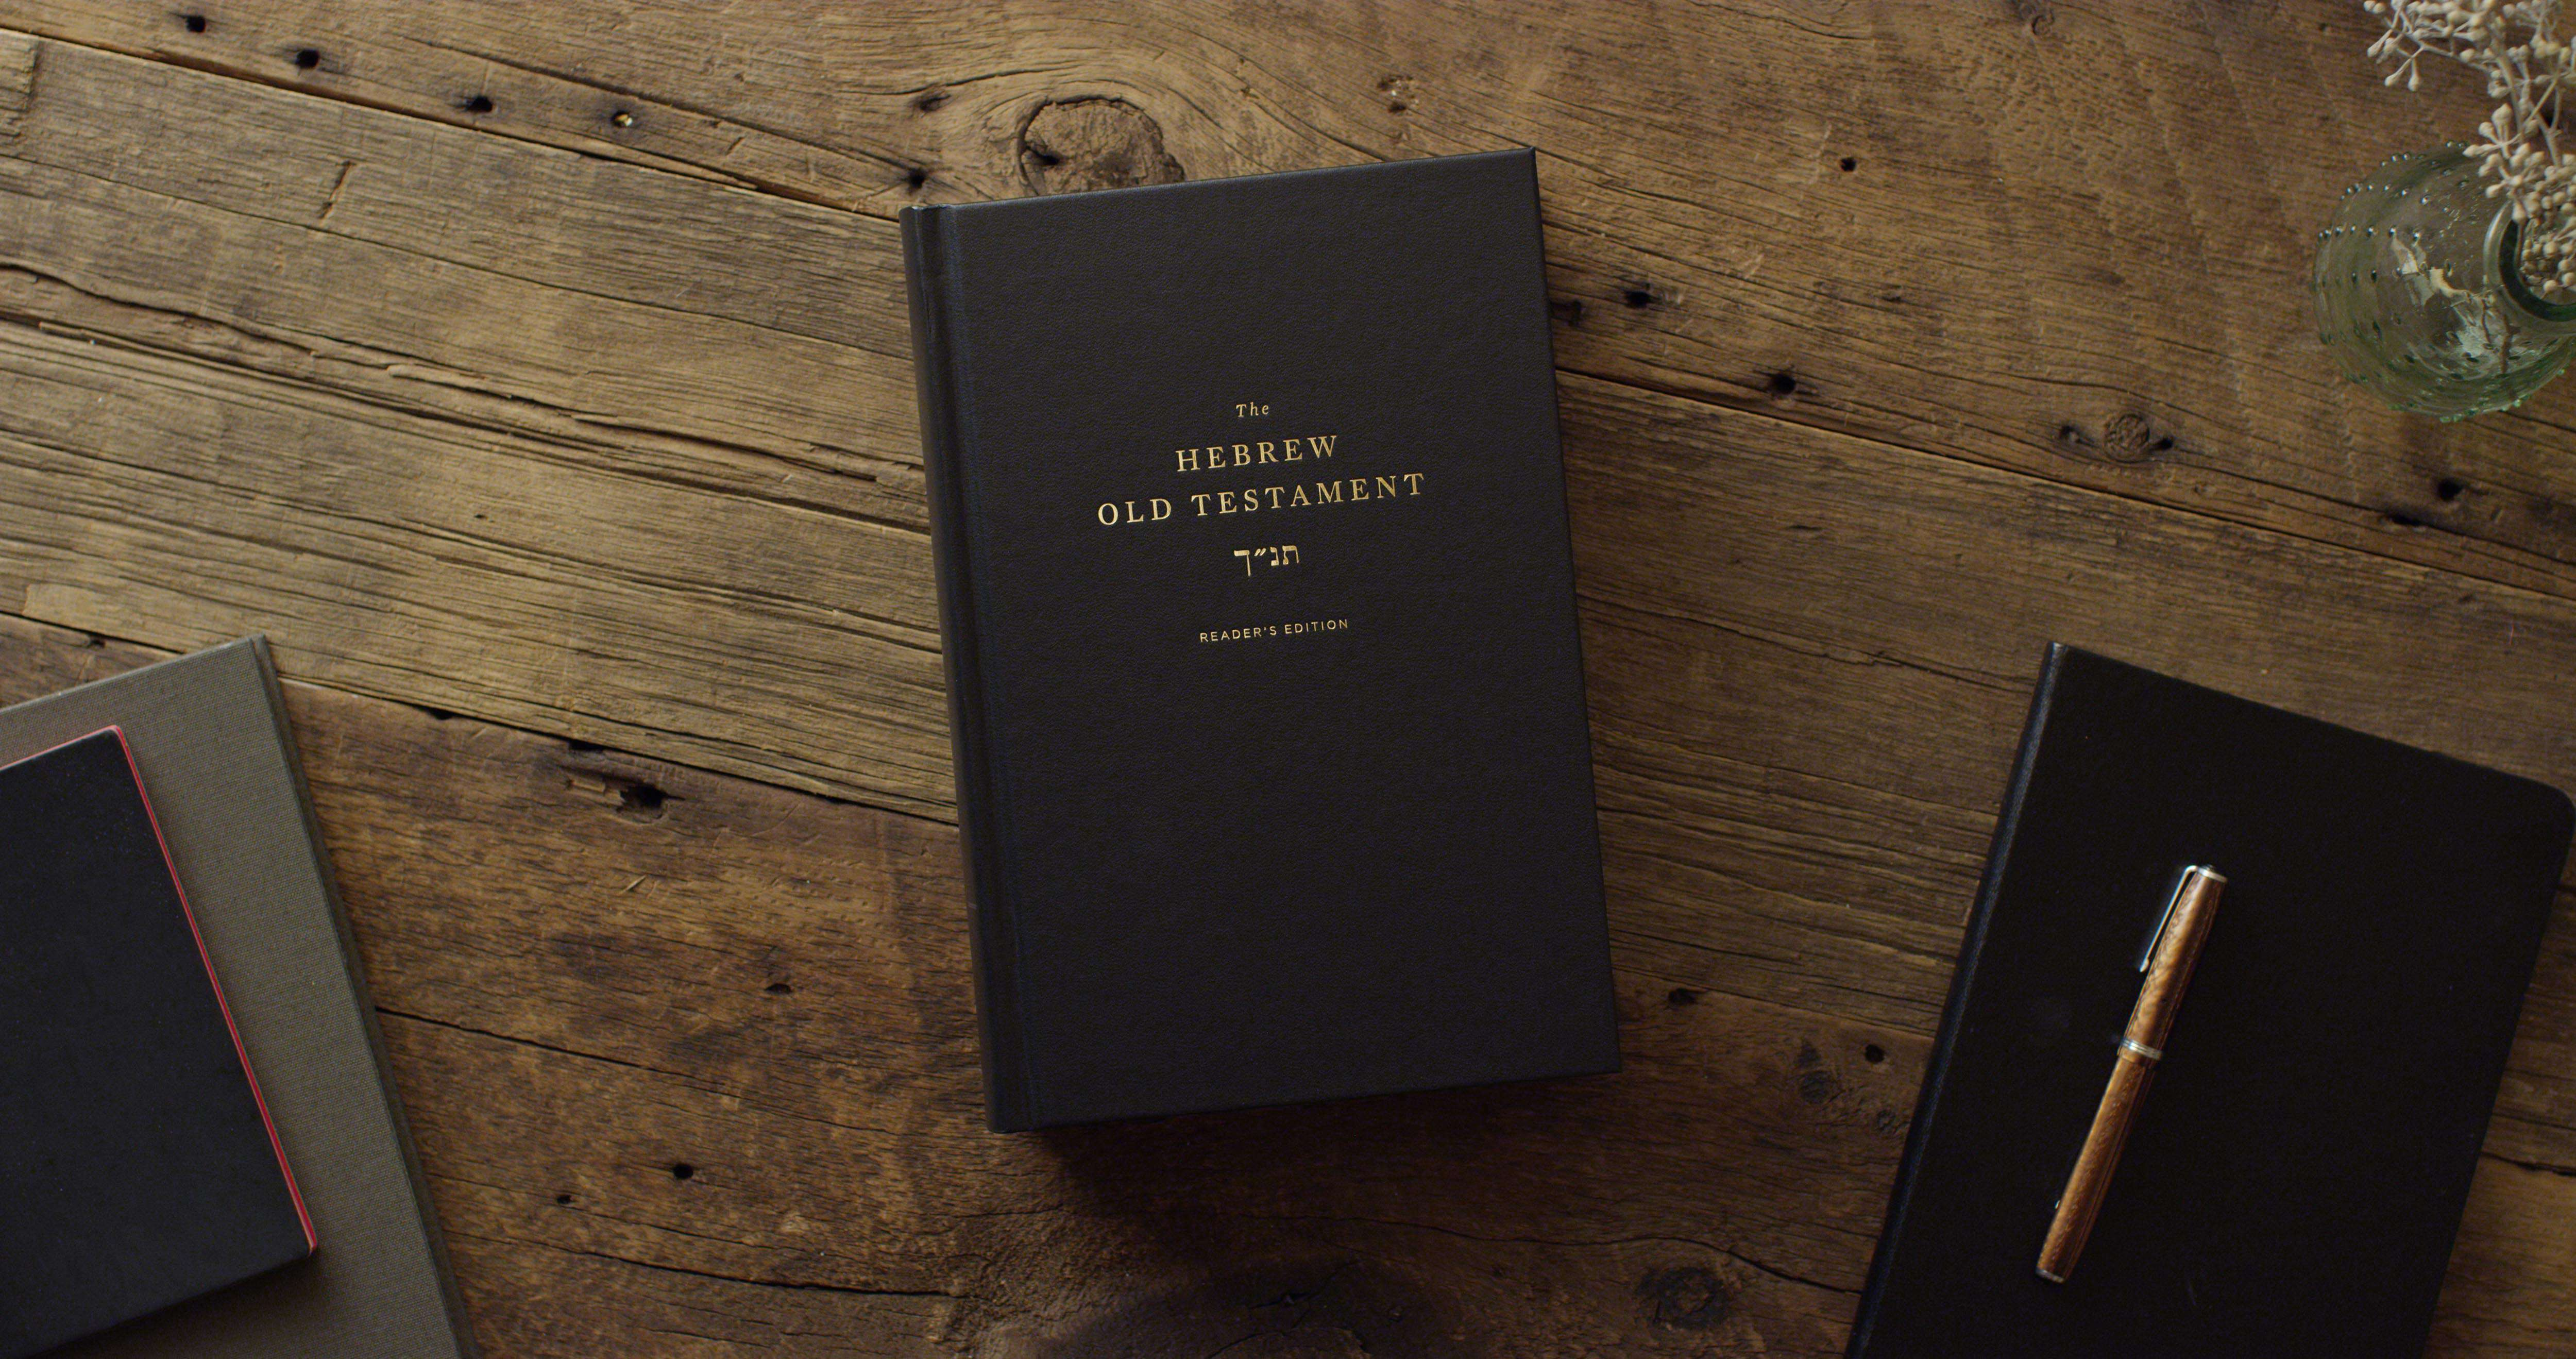 Introducing 'The Hebrew Old Testament, Reader's Edition'